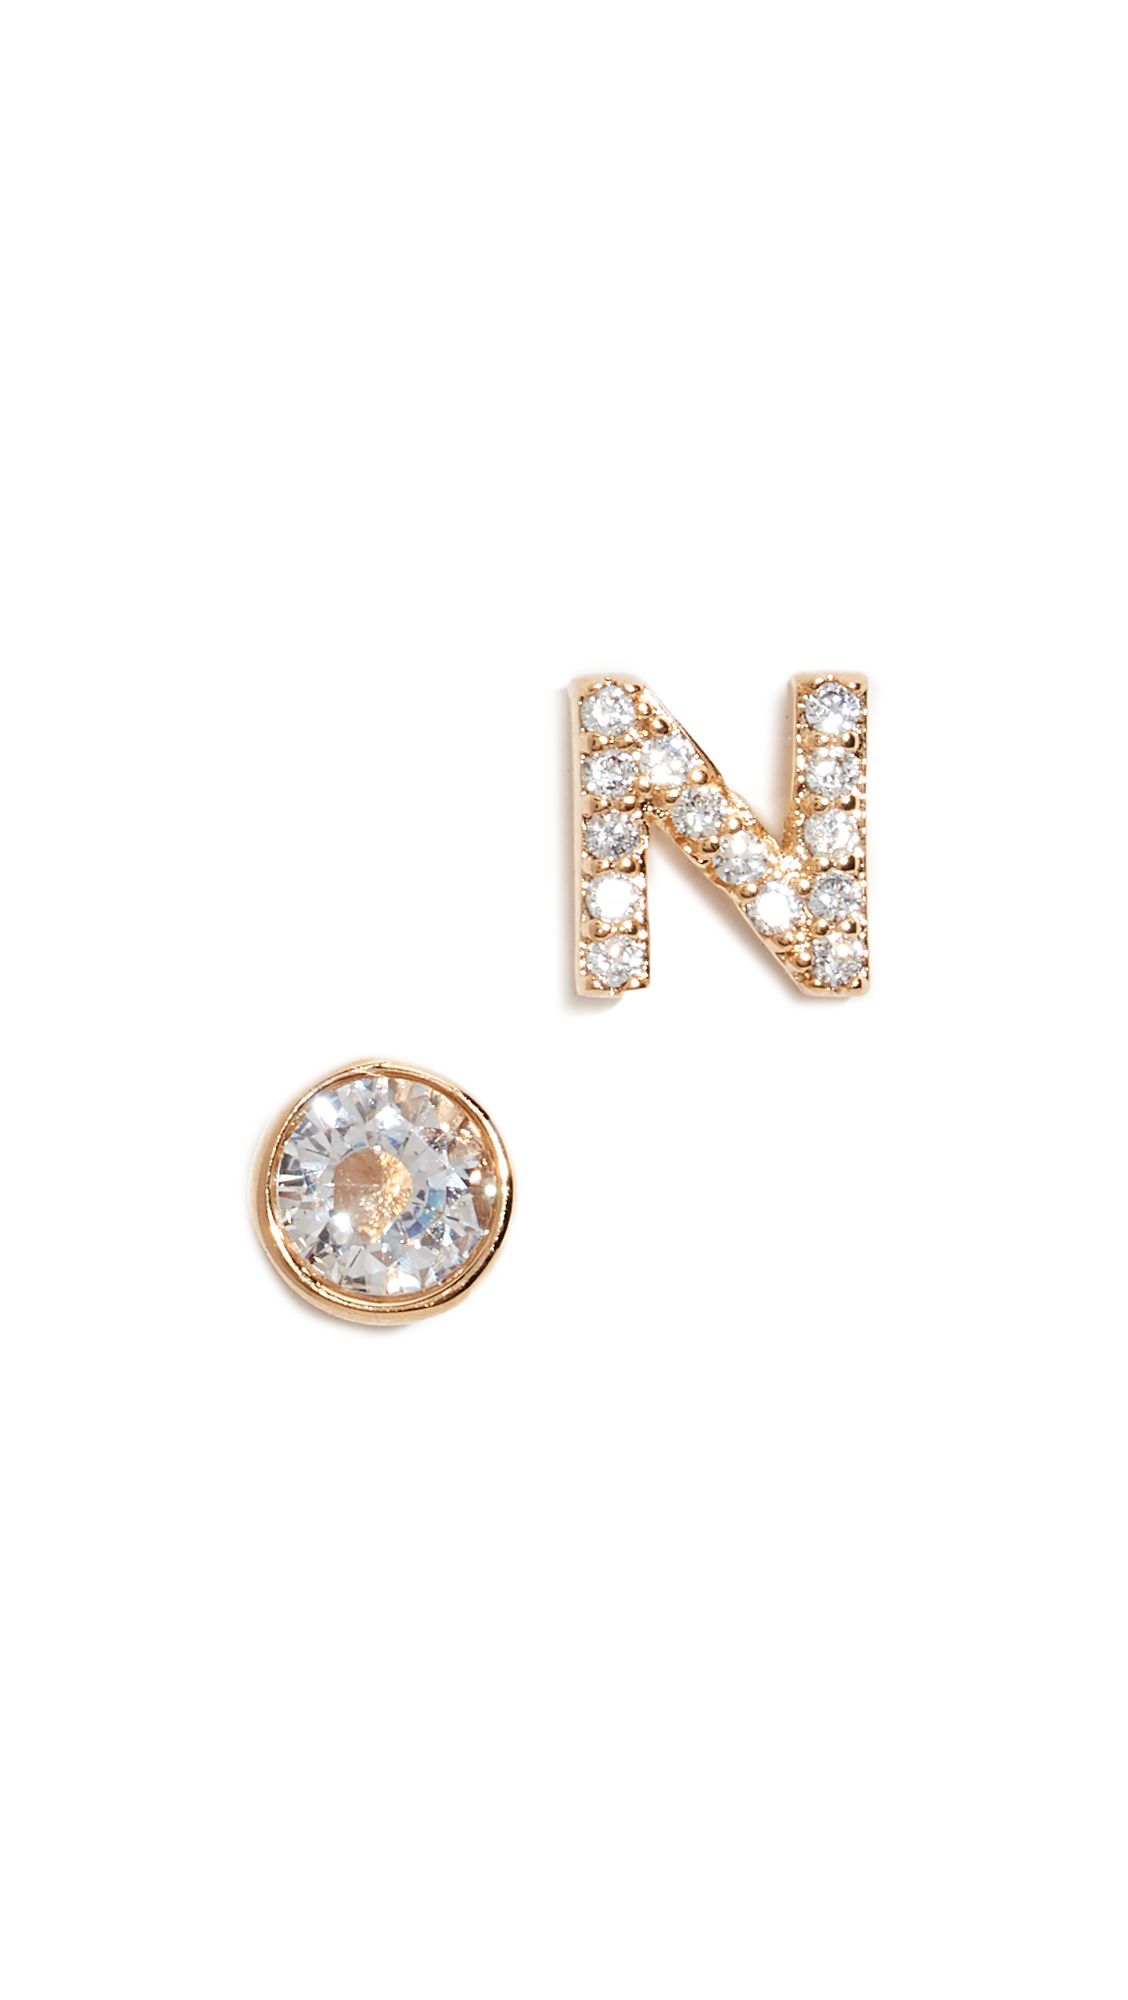 Kate Spade New York One in a Million Pave Stud Earrings - N